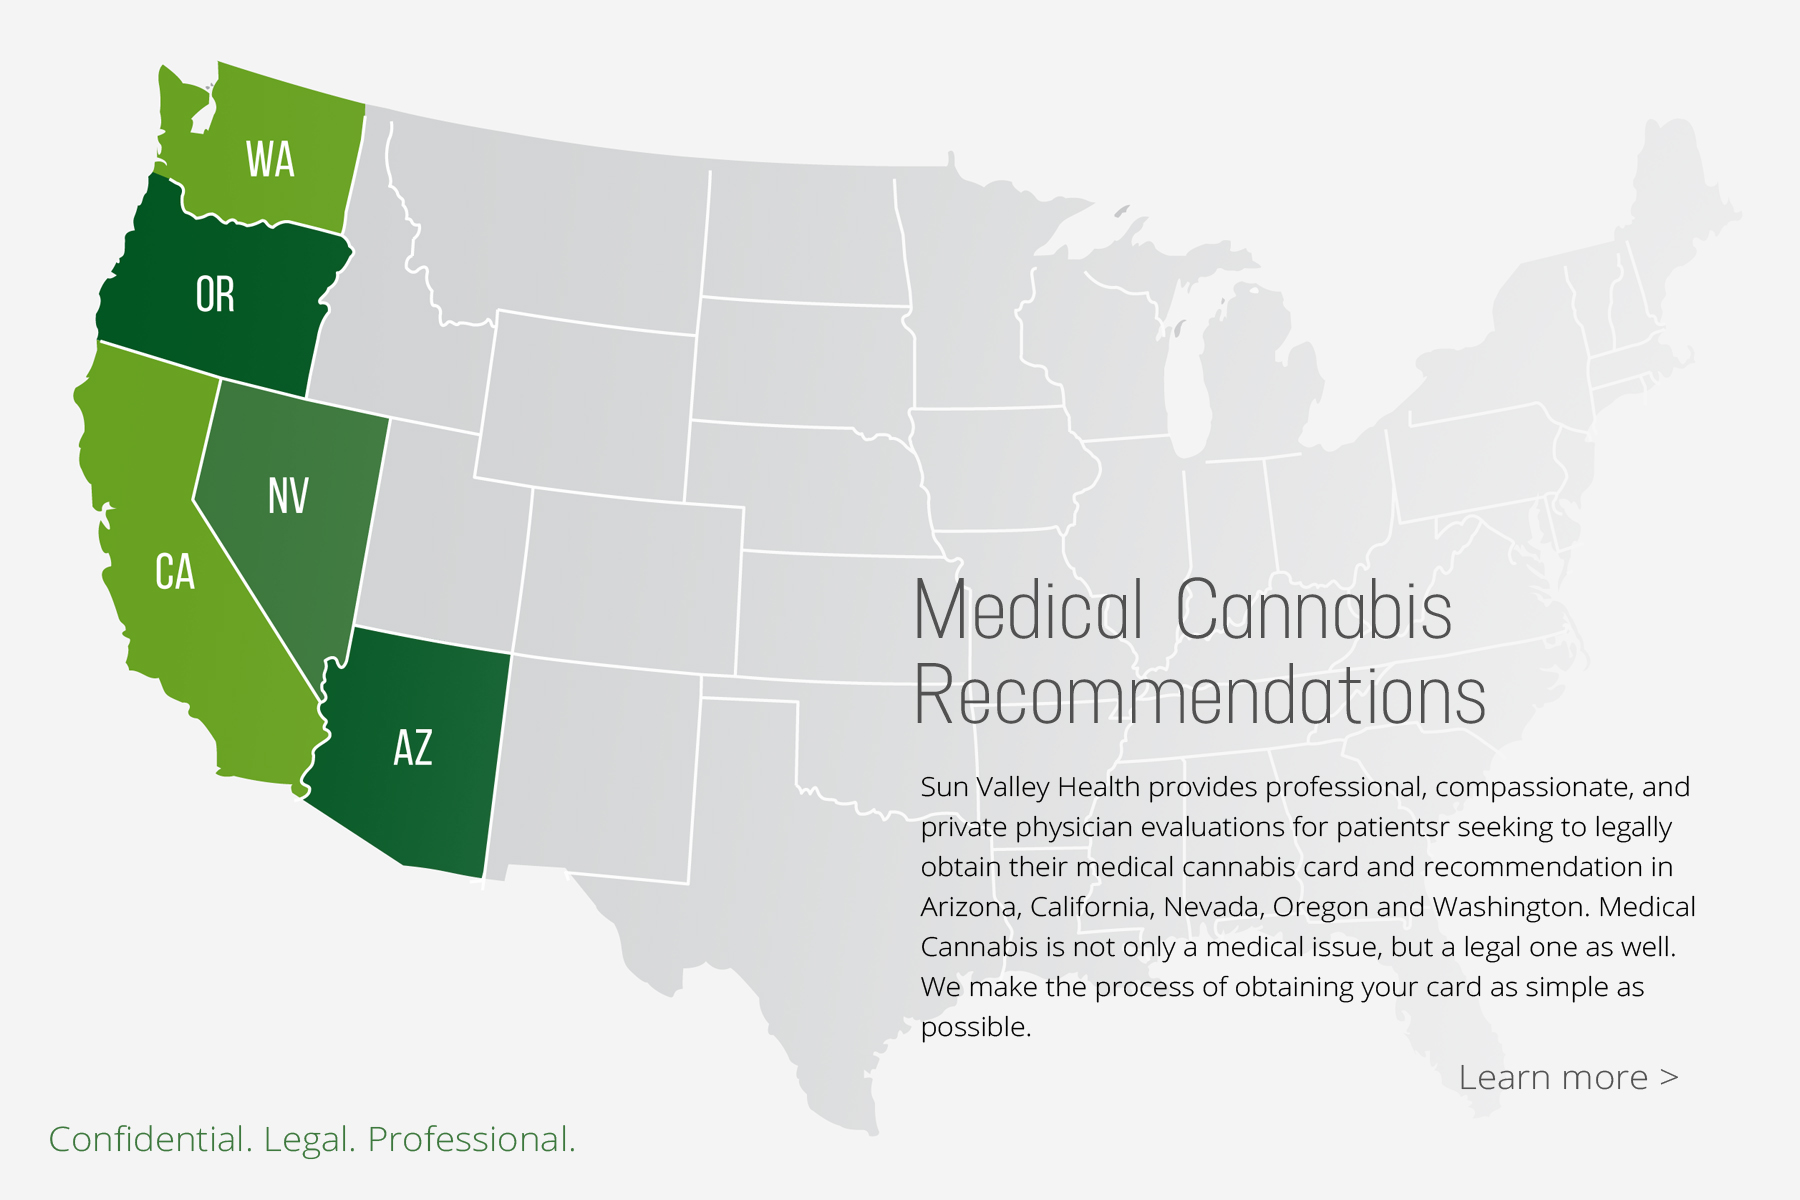 Medical Cannabis Recommendations